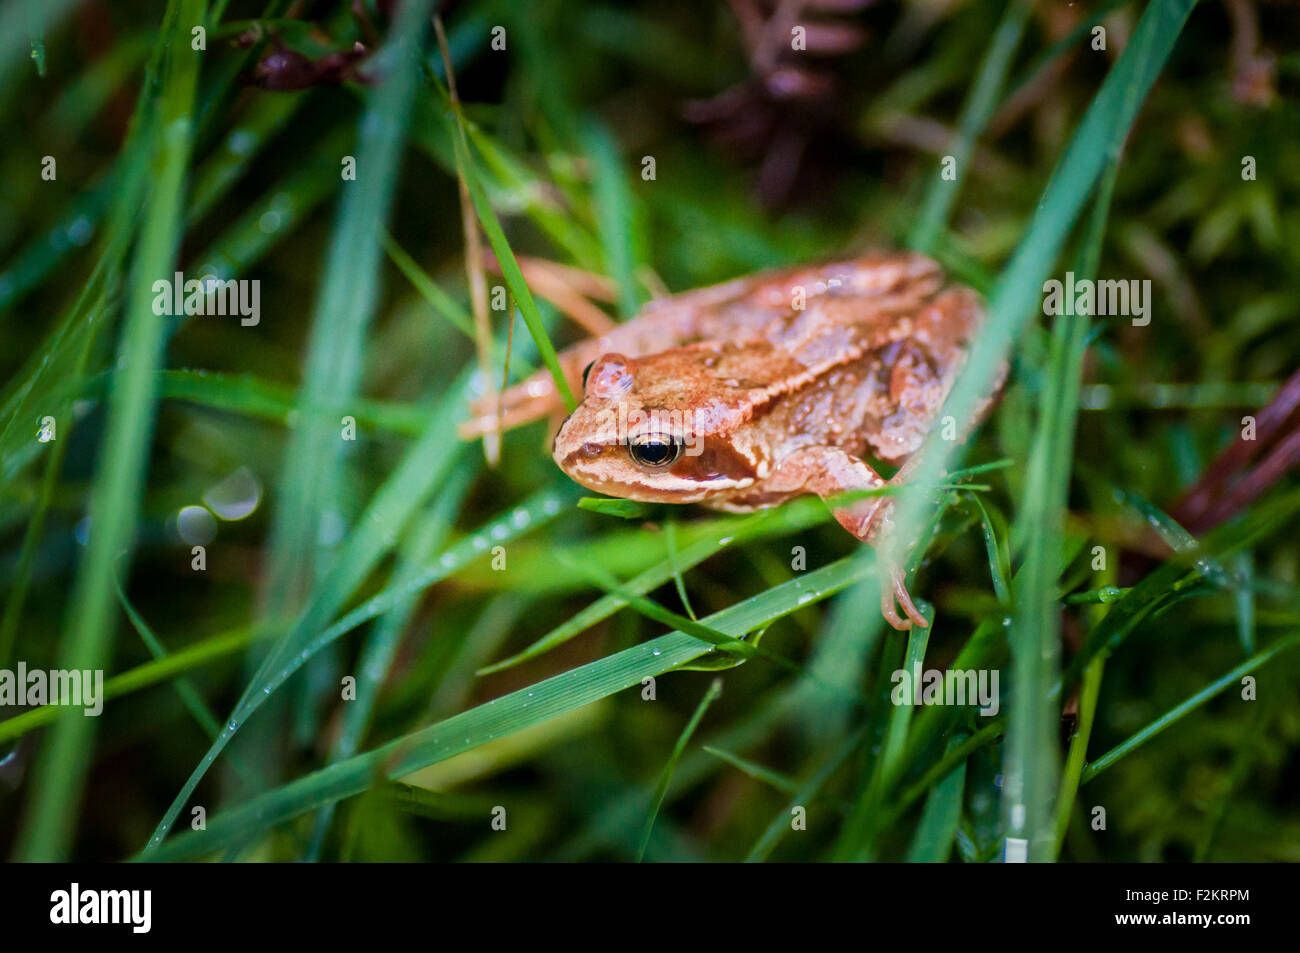 Common European Frog (Rana Temporaria) in wet grass in County Wicklow in Ireland - Stock Image